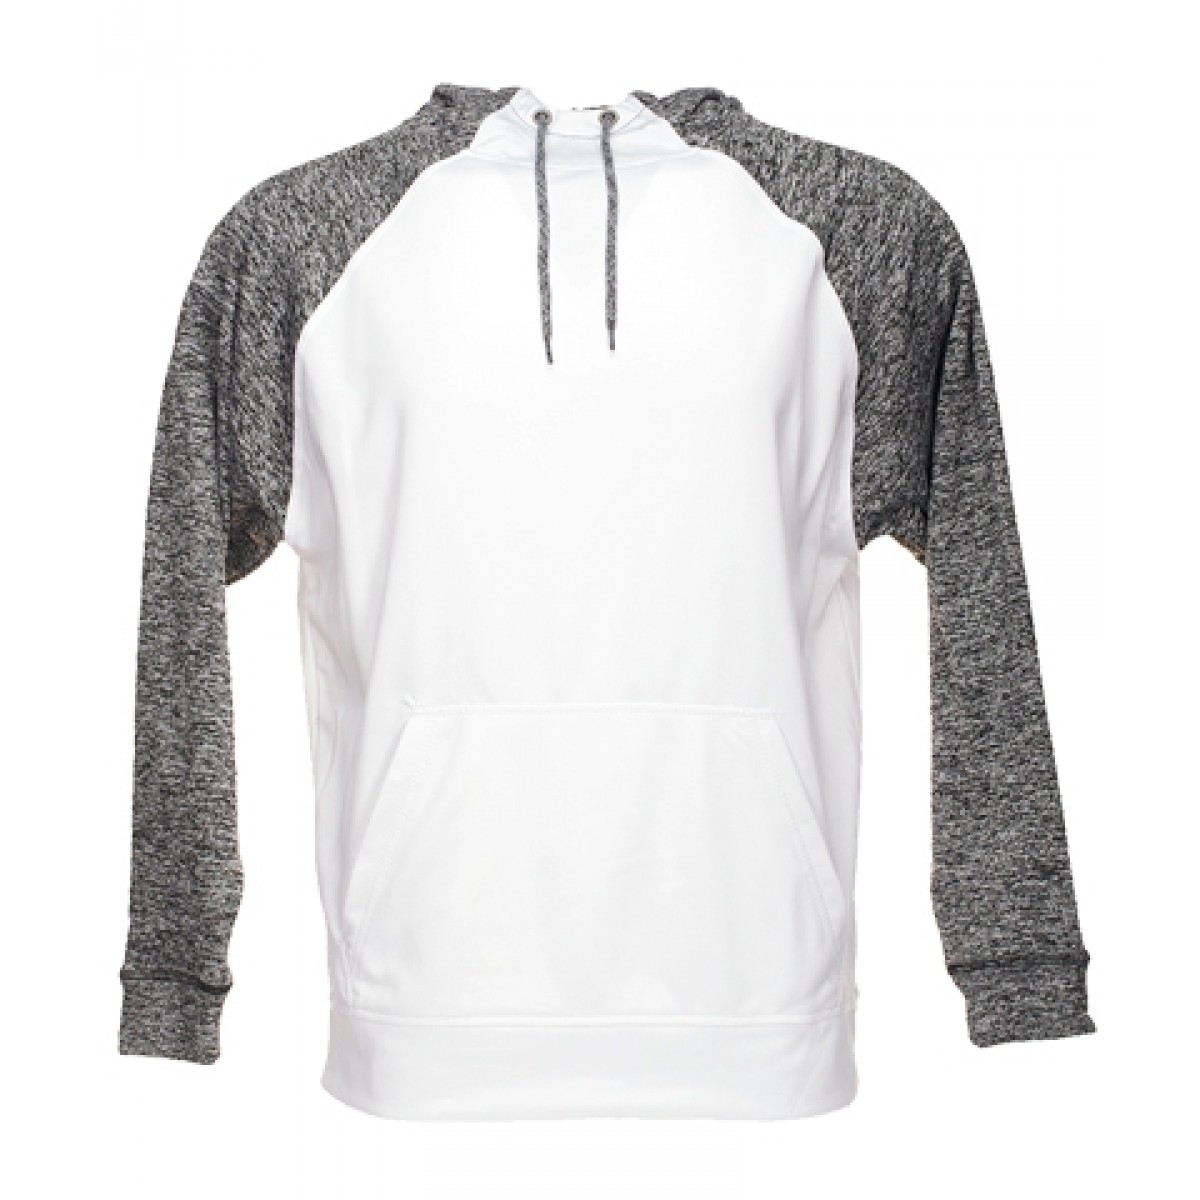 J America Cosmic Hooded Sweatshirt-White/Black-L